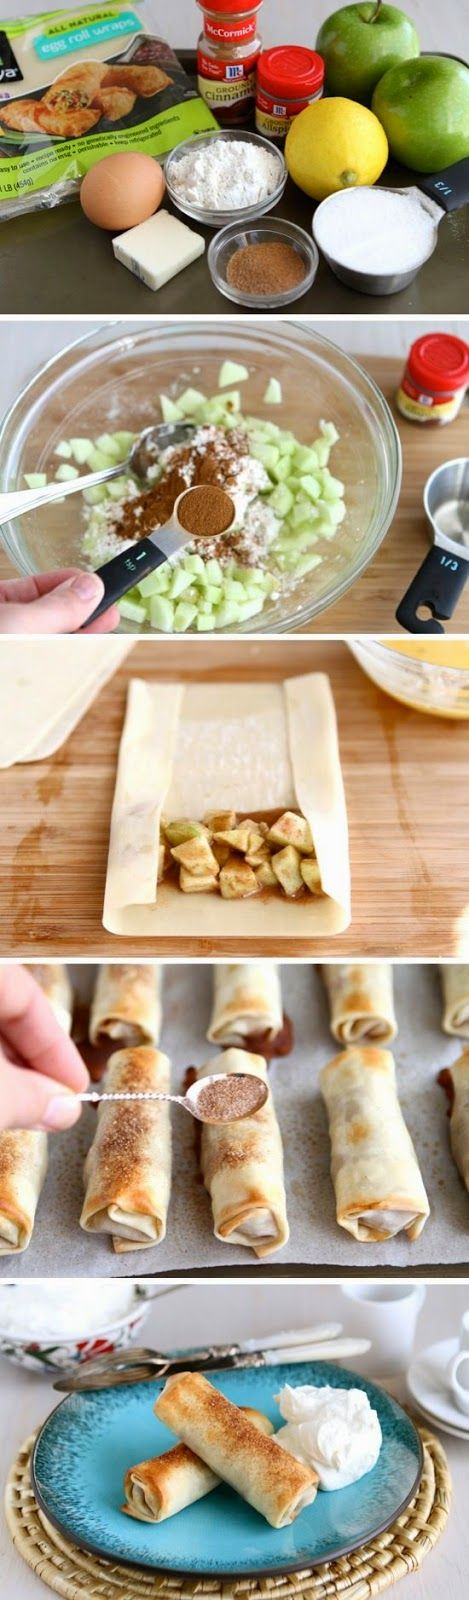 Apple Pie Egg Rolls! Went to find a regular egg roll recipe but may end up making these instead! LOL